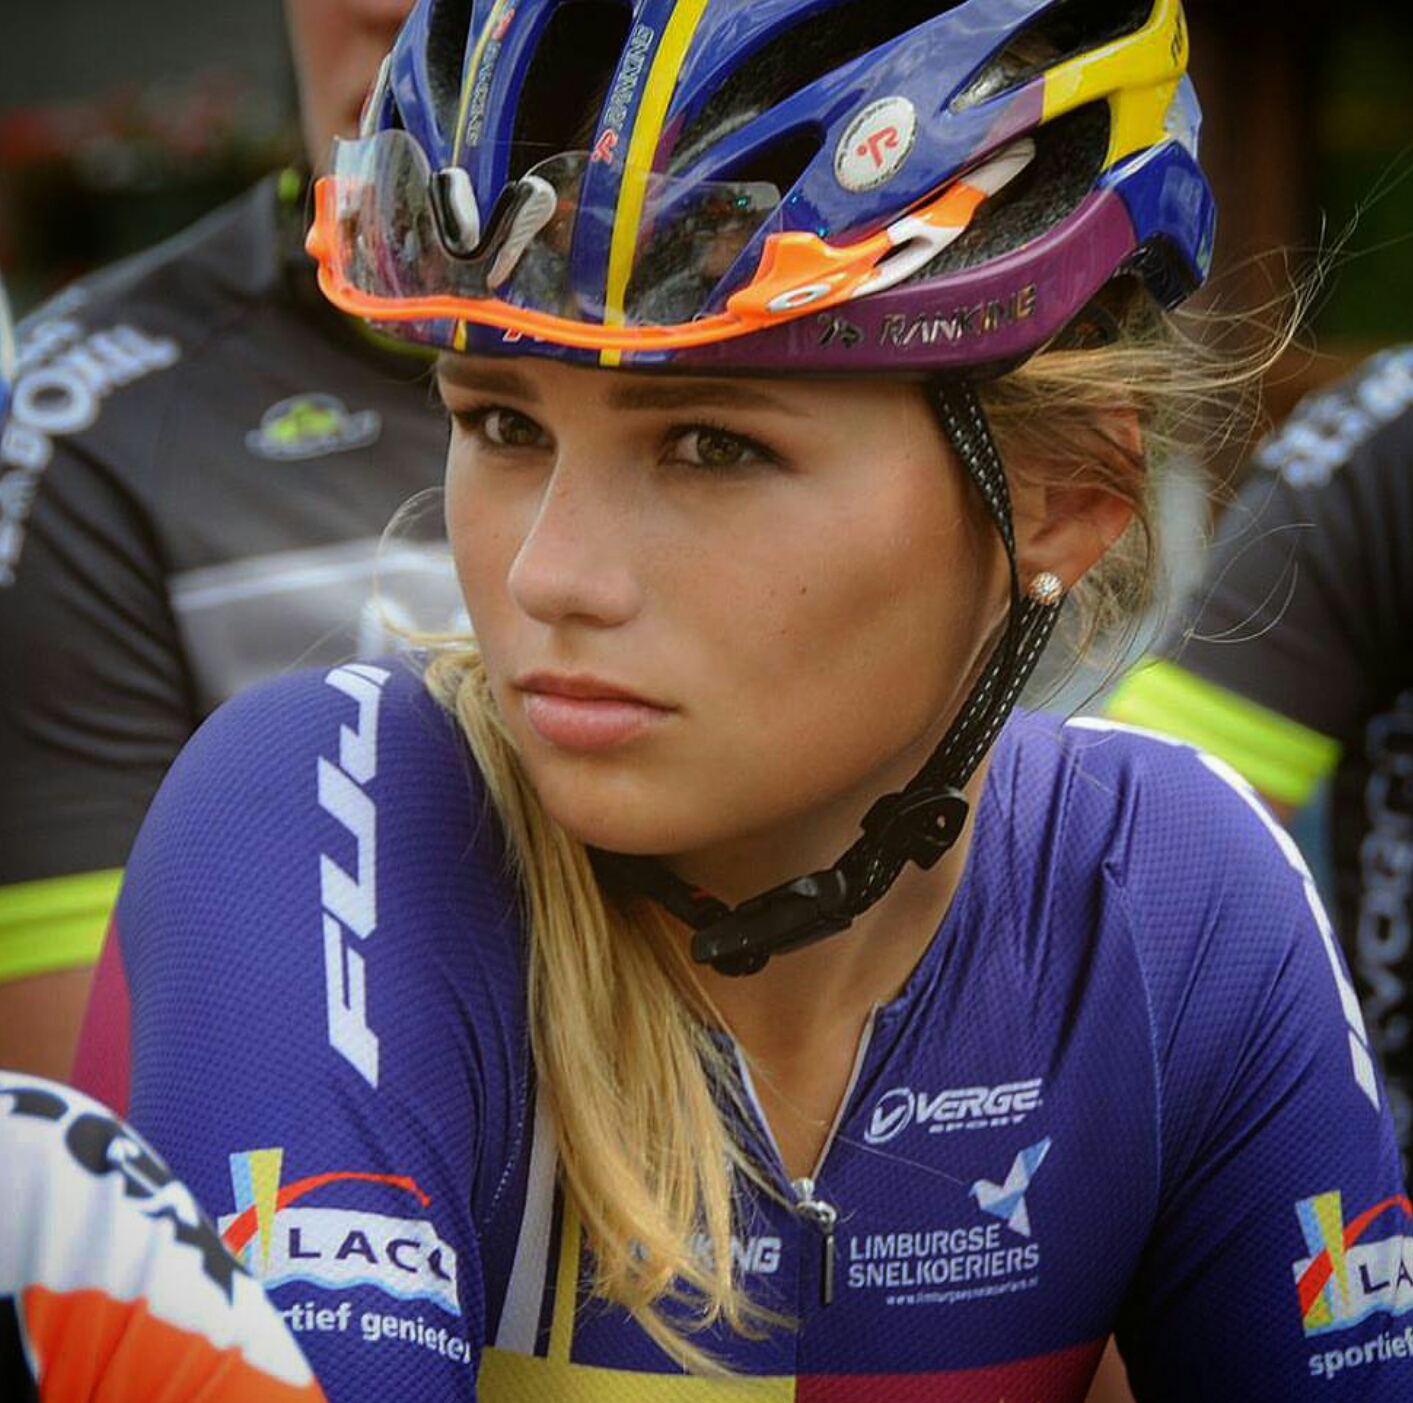 1 - Puck Moonen is a 20-year-old Dutch cyclist who competes for the Autoglas Wetteren Cycling Team.